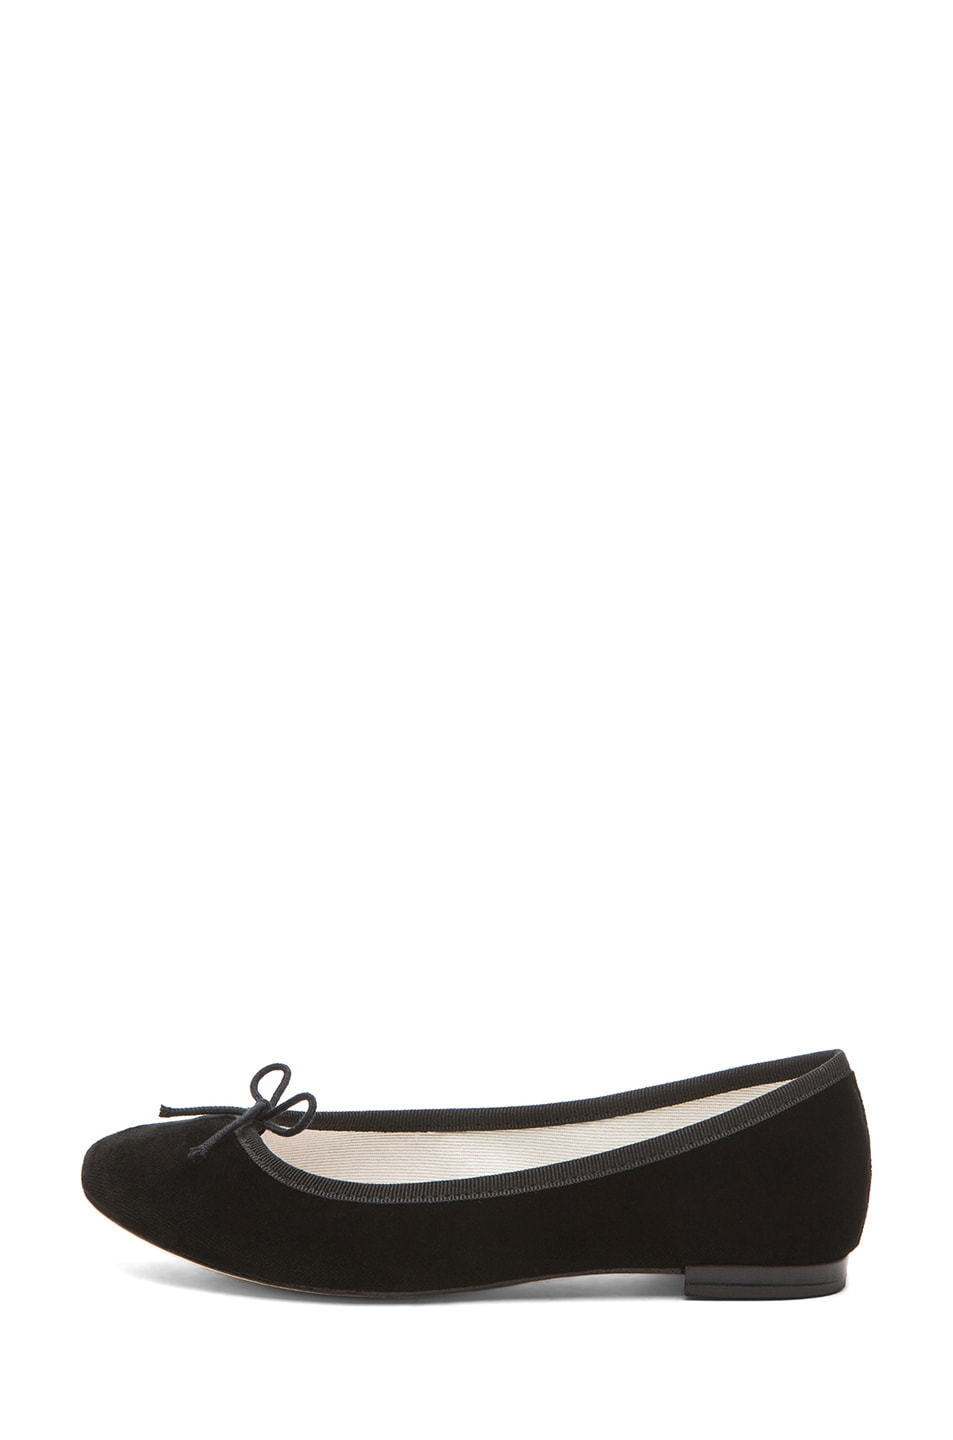 Image 1 of Repetto Velour Flats in Black